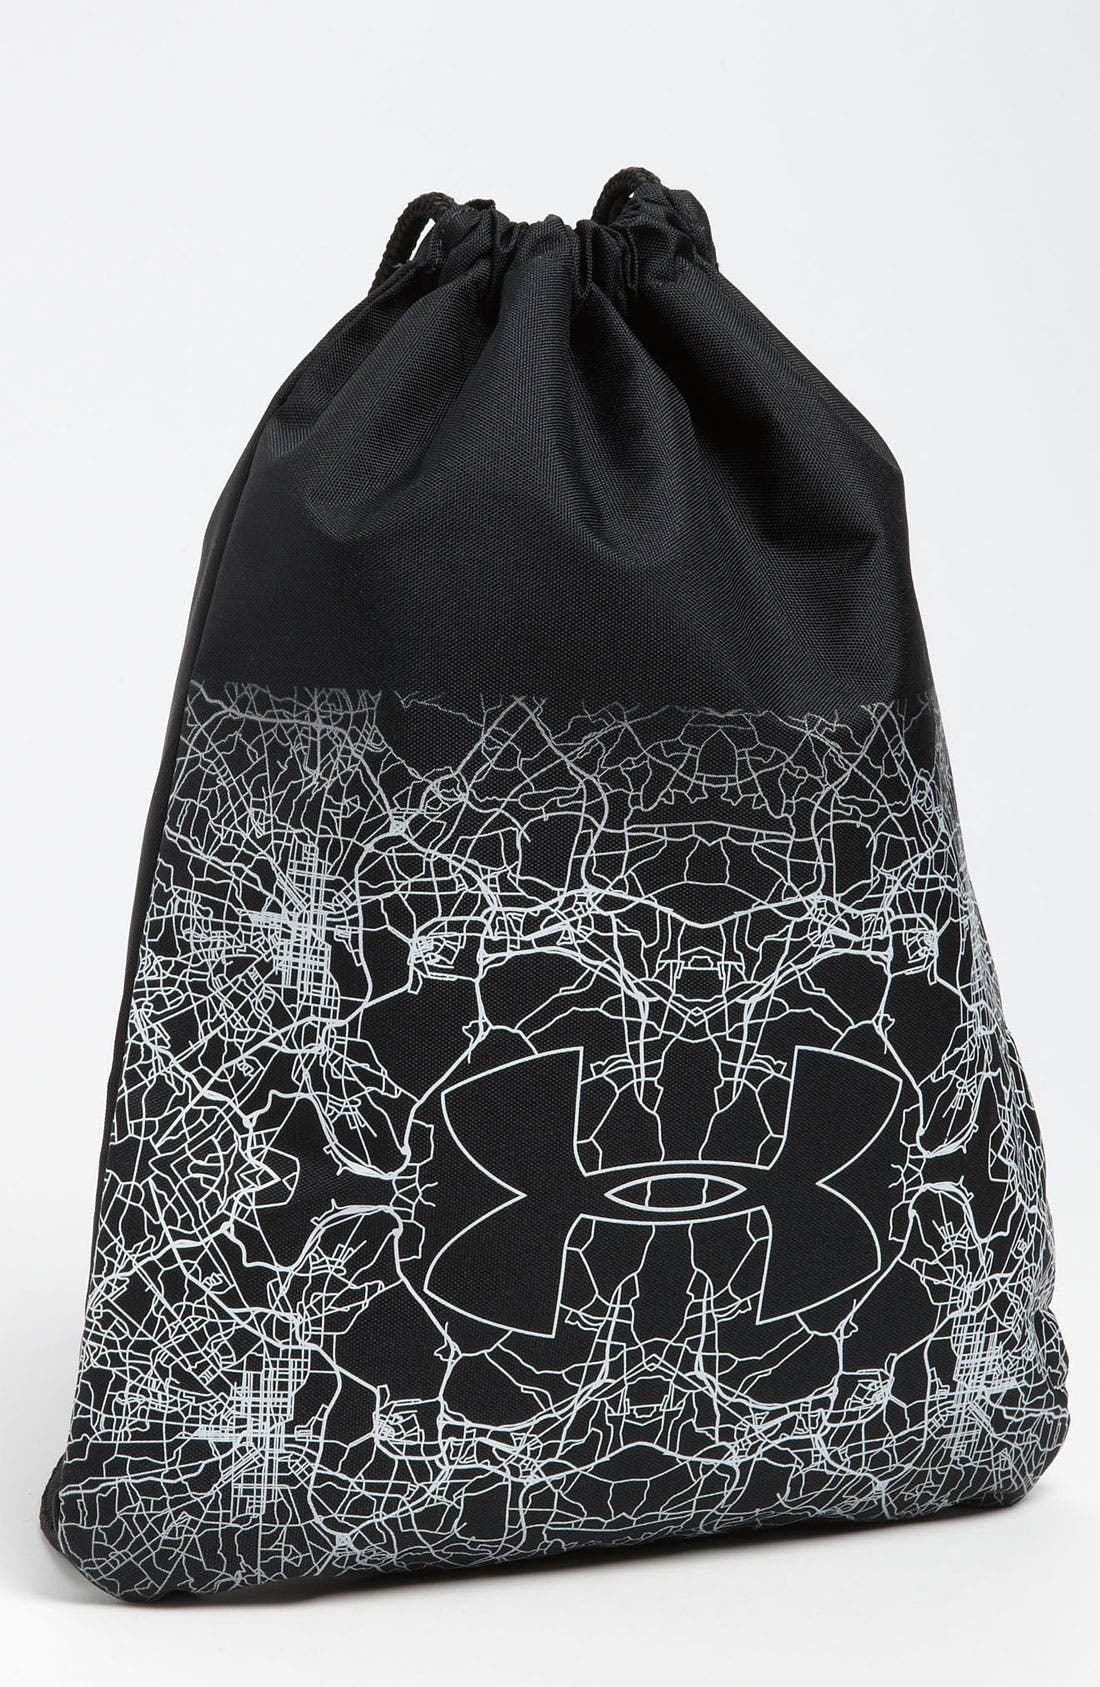 Main Image - Under Armour 'Tyro Courage' Sackpack (Kids)